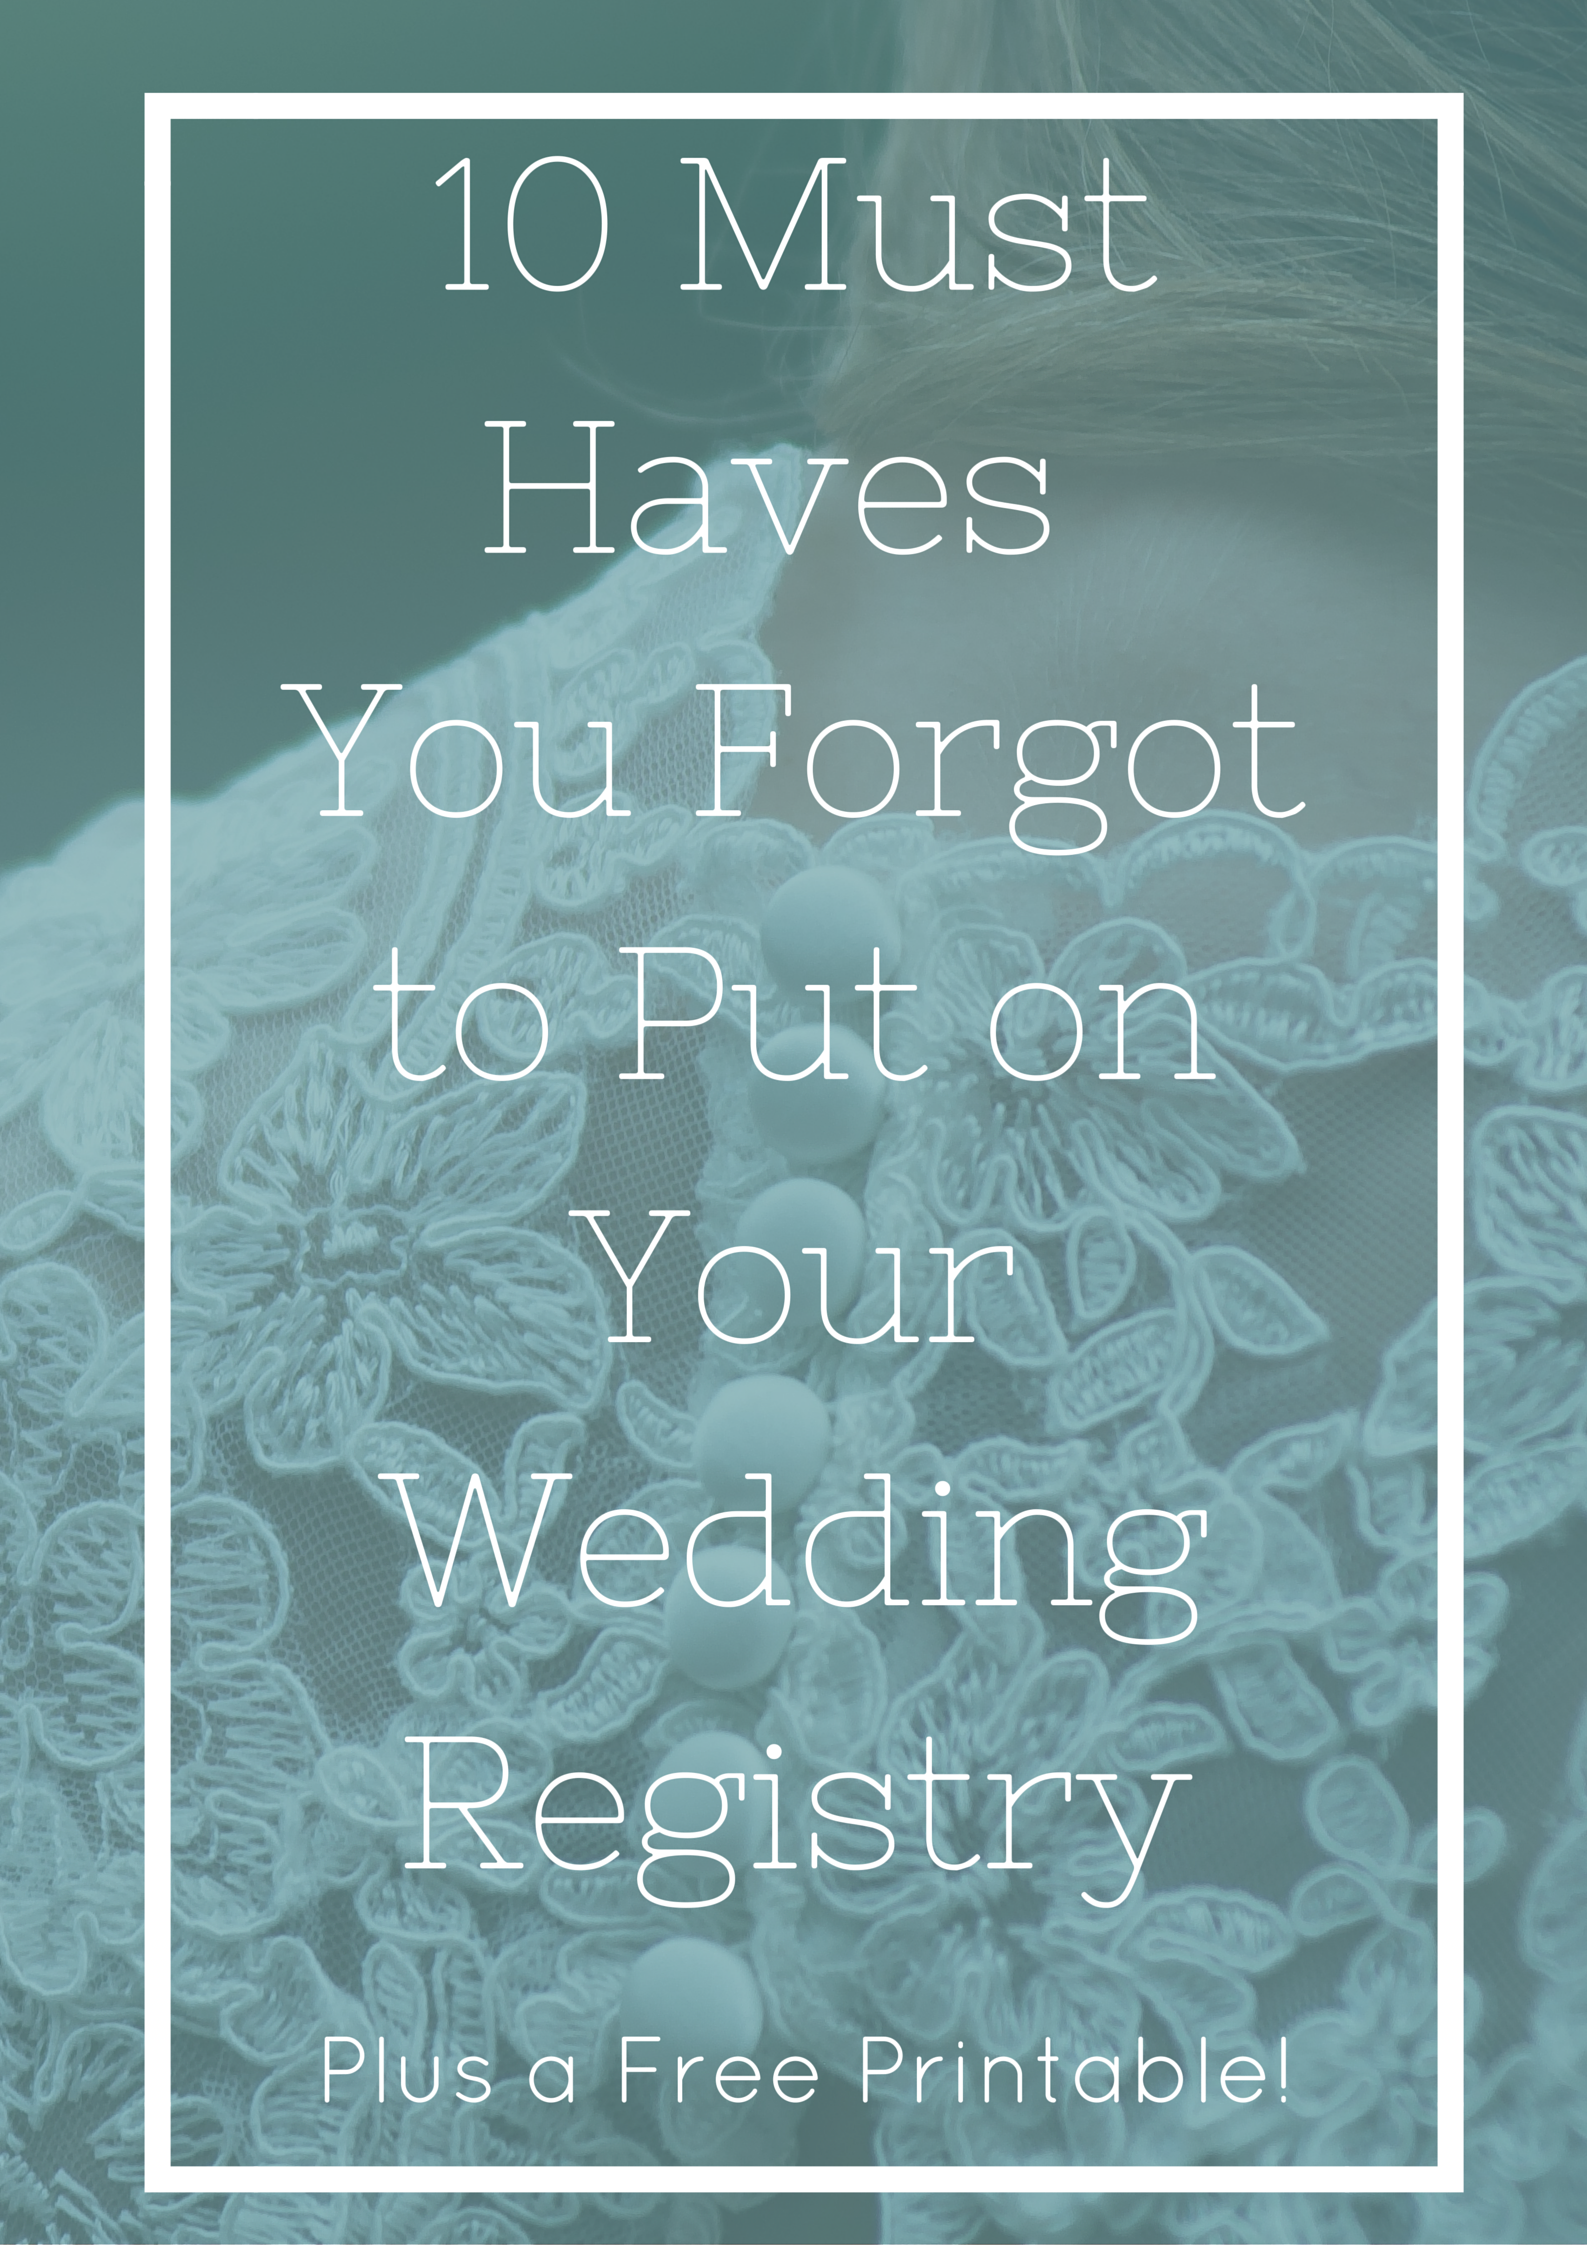 10 Must Haves You Forgot To Put On Your Wedding Registry Start Marriage Off